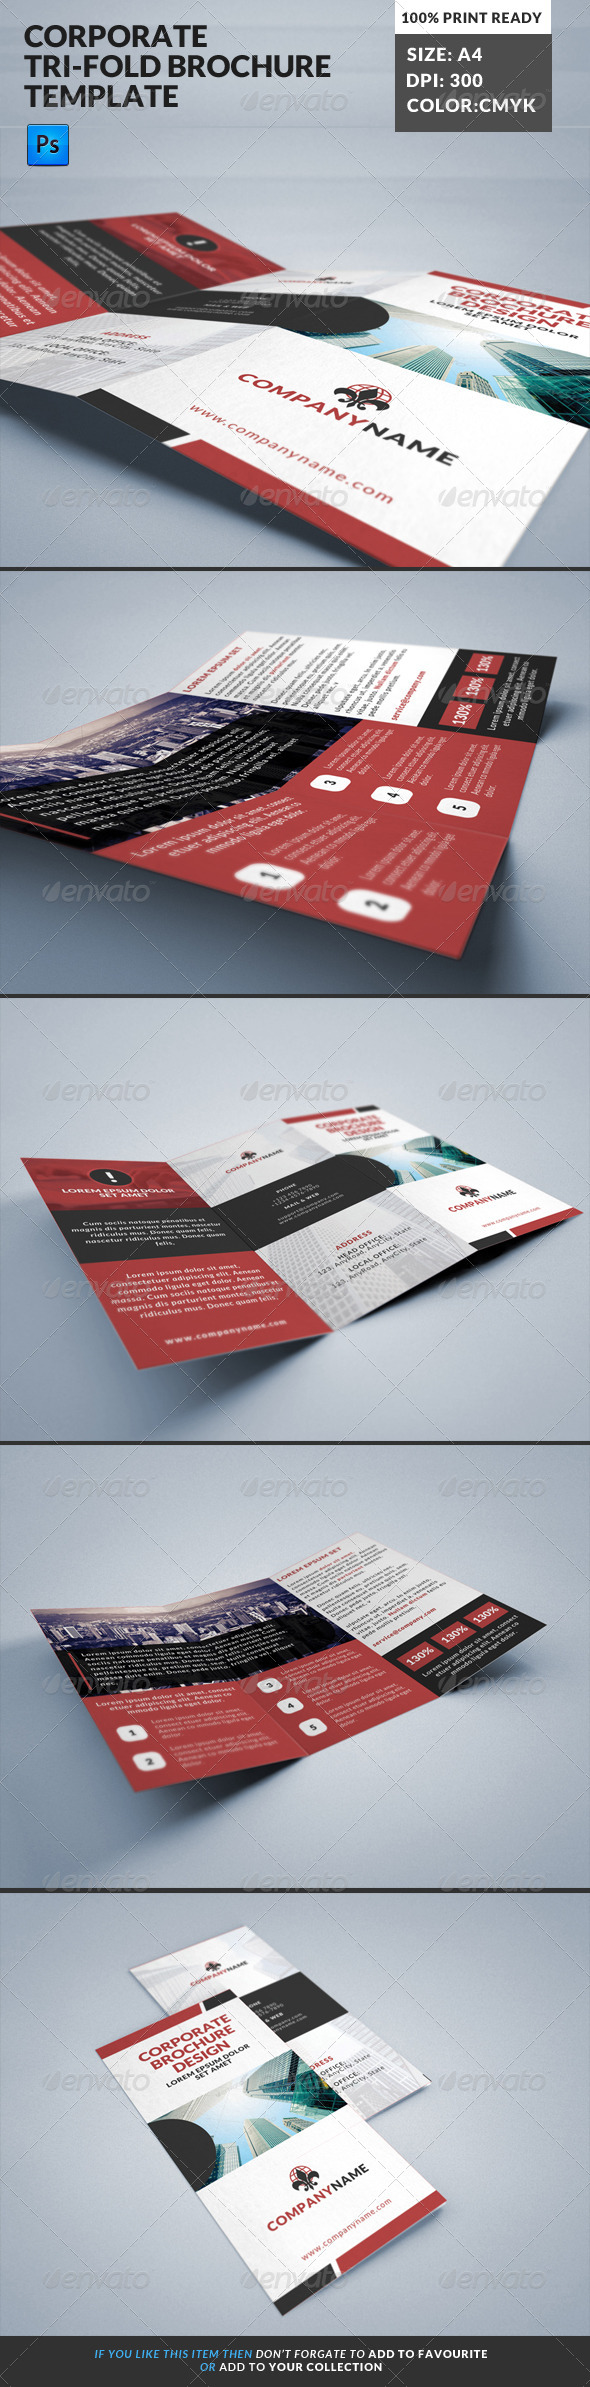 GraphicRiver Corporate Tri-Fold Brochures Template 14 8173809